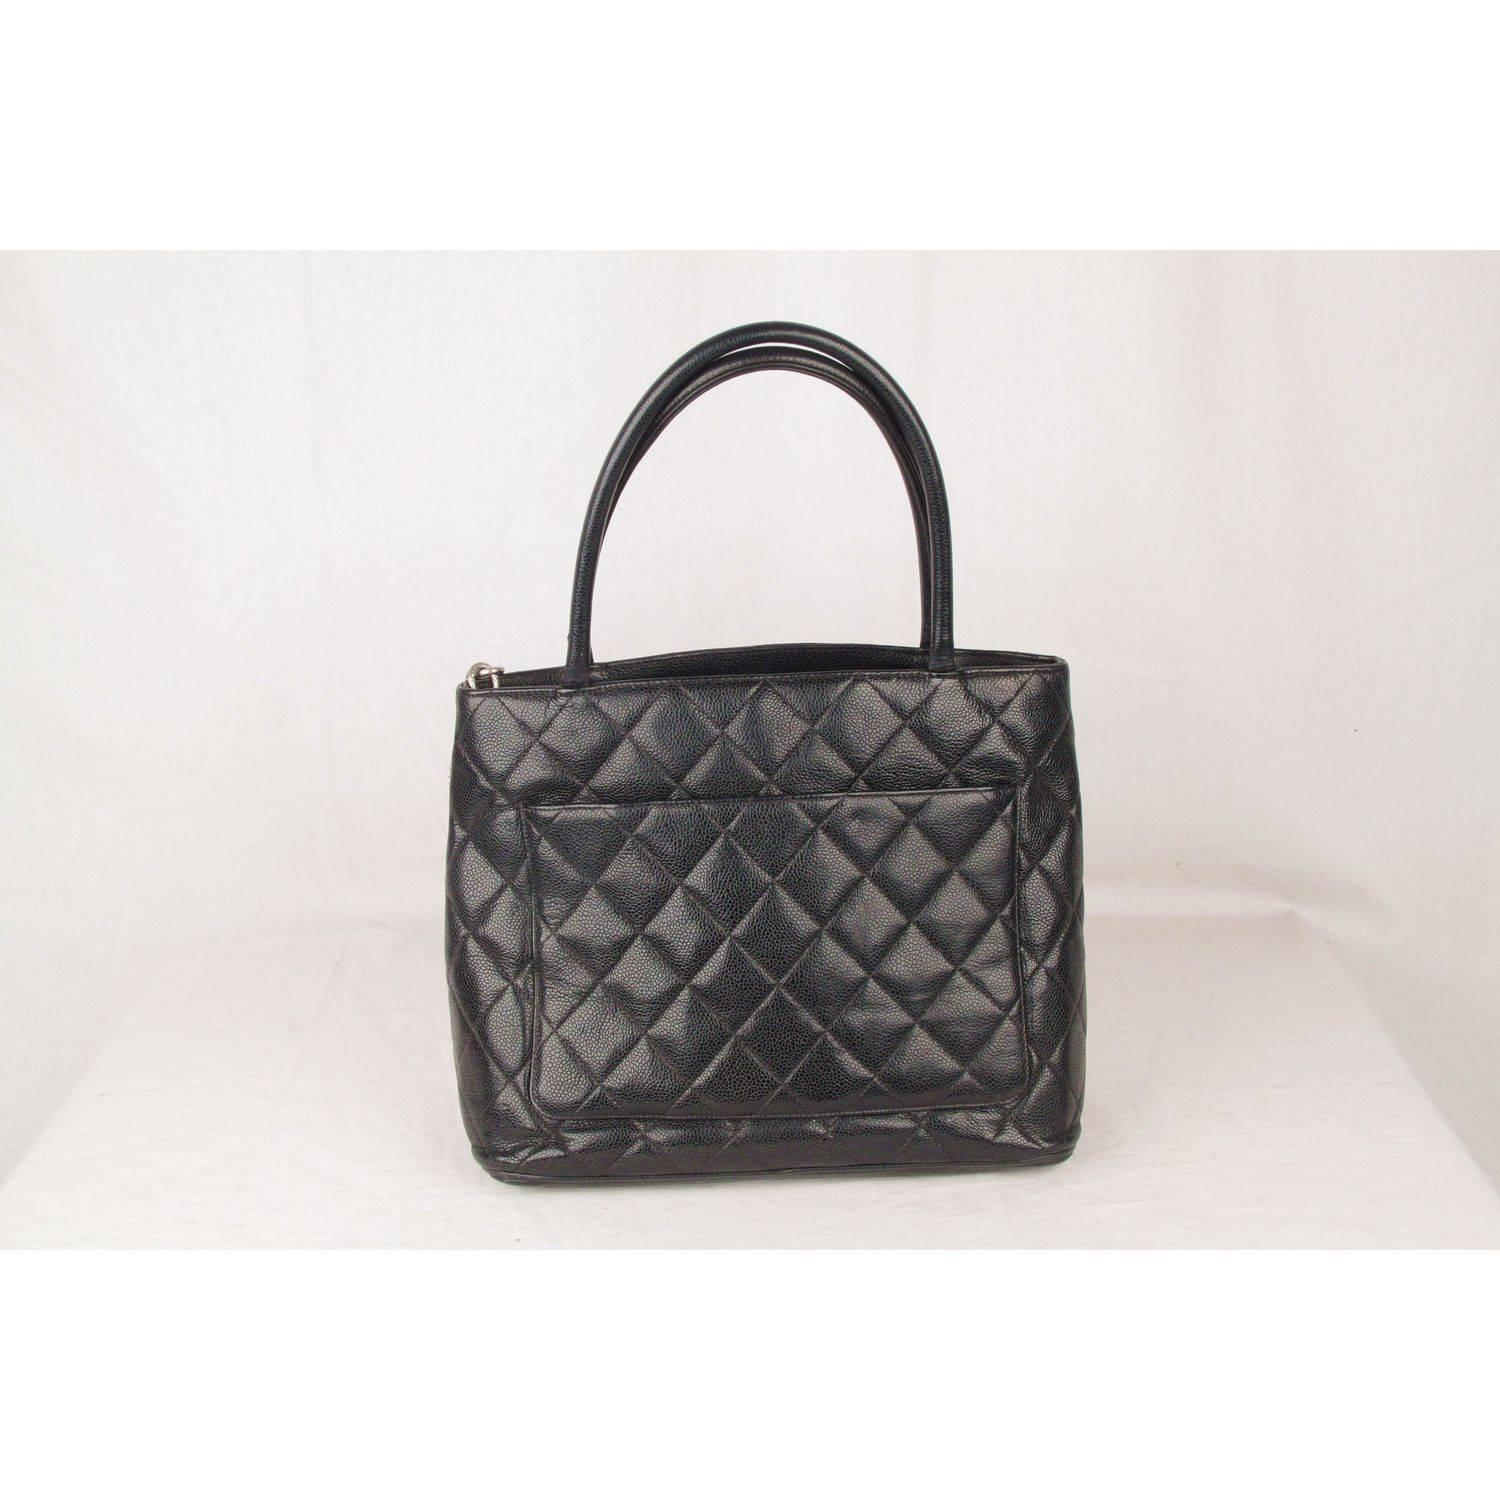 85d371ca78fe CHANEL Black Quilted Caviar Leather MEDALLION Tote Bag For Sale at 1stdibs